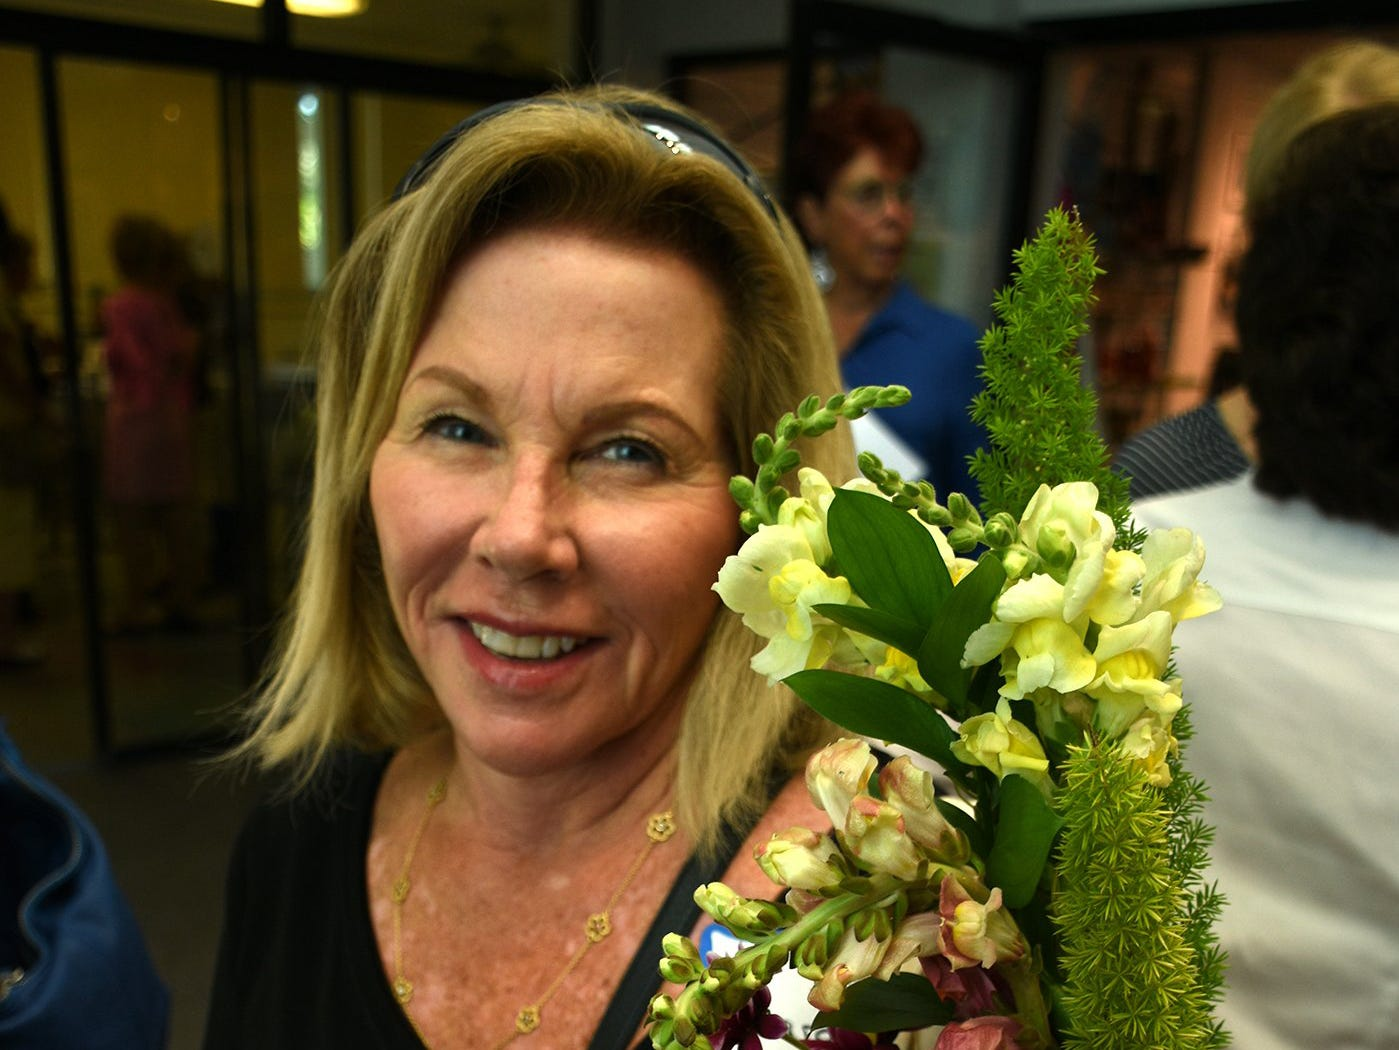 Carol Solarino made this floral arrangement in a class led by Diane Hughes and Juliette Flasche. The Calusa Garden Club Gardening Expo at Marco Island Center for the Arts on Saturday displayed beautiful arrangements and showed people how to create their own.